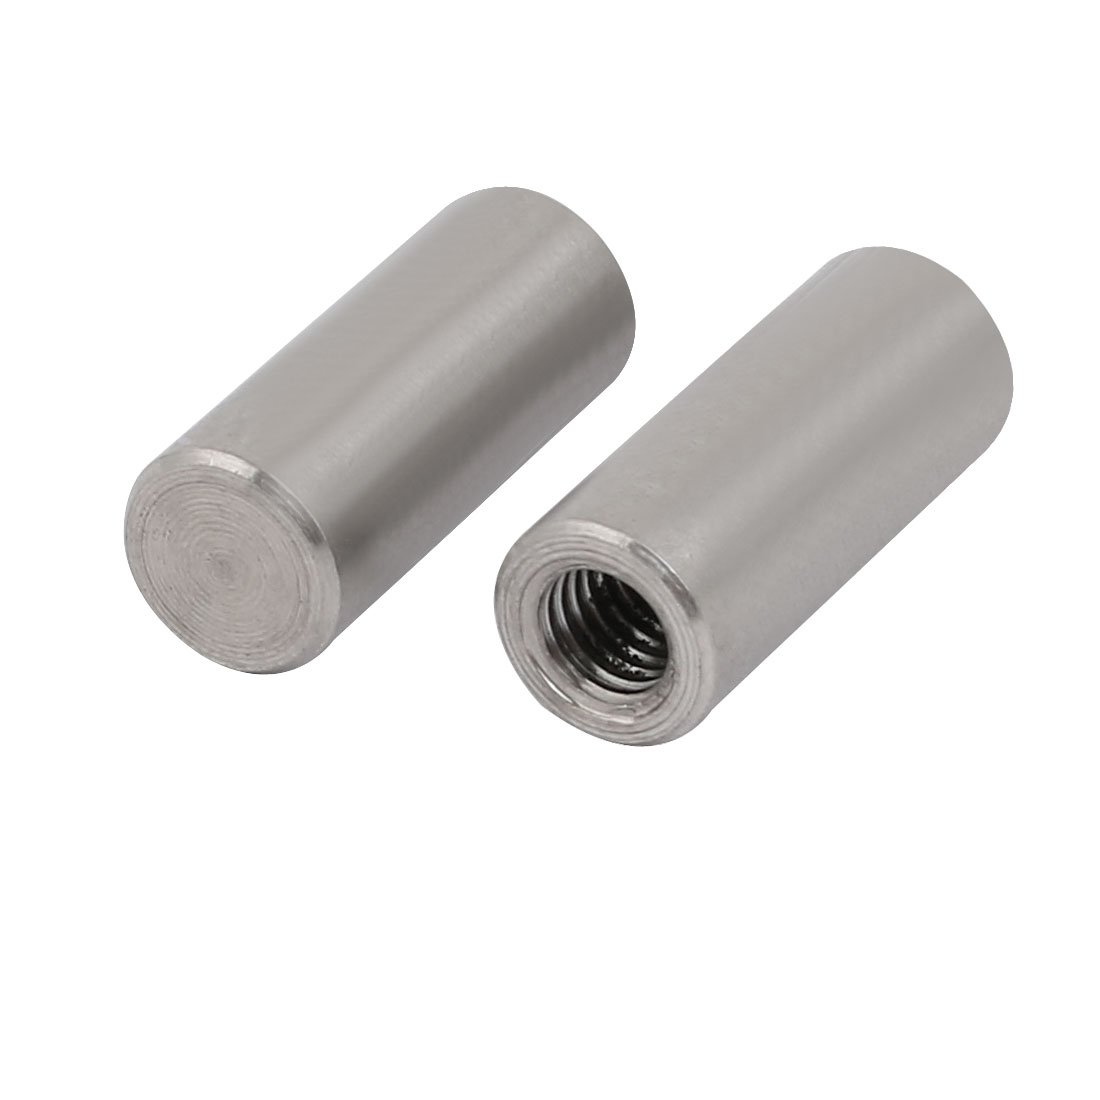 sourcingmap 304 Stainless Steel M5 Female Thread 8mm x 20mm Cylindrical Dowel Pin 2pcs a17110100ux0082